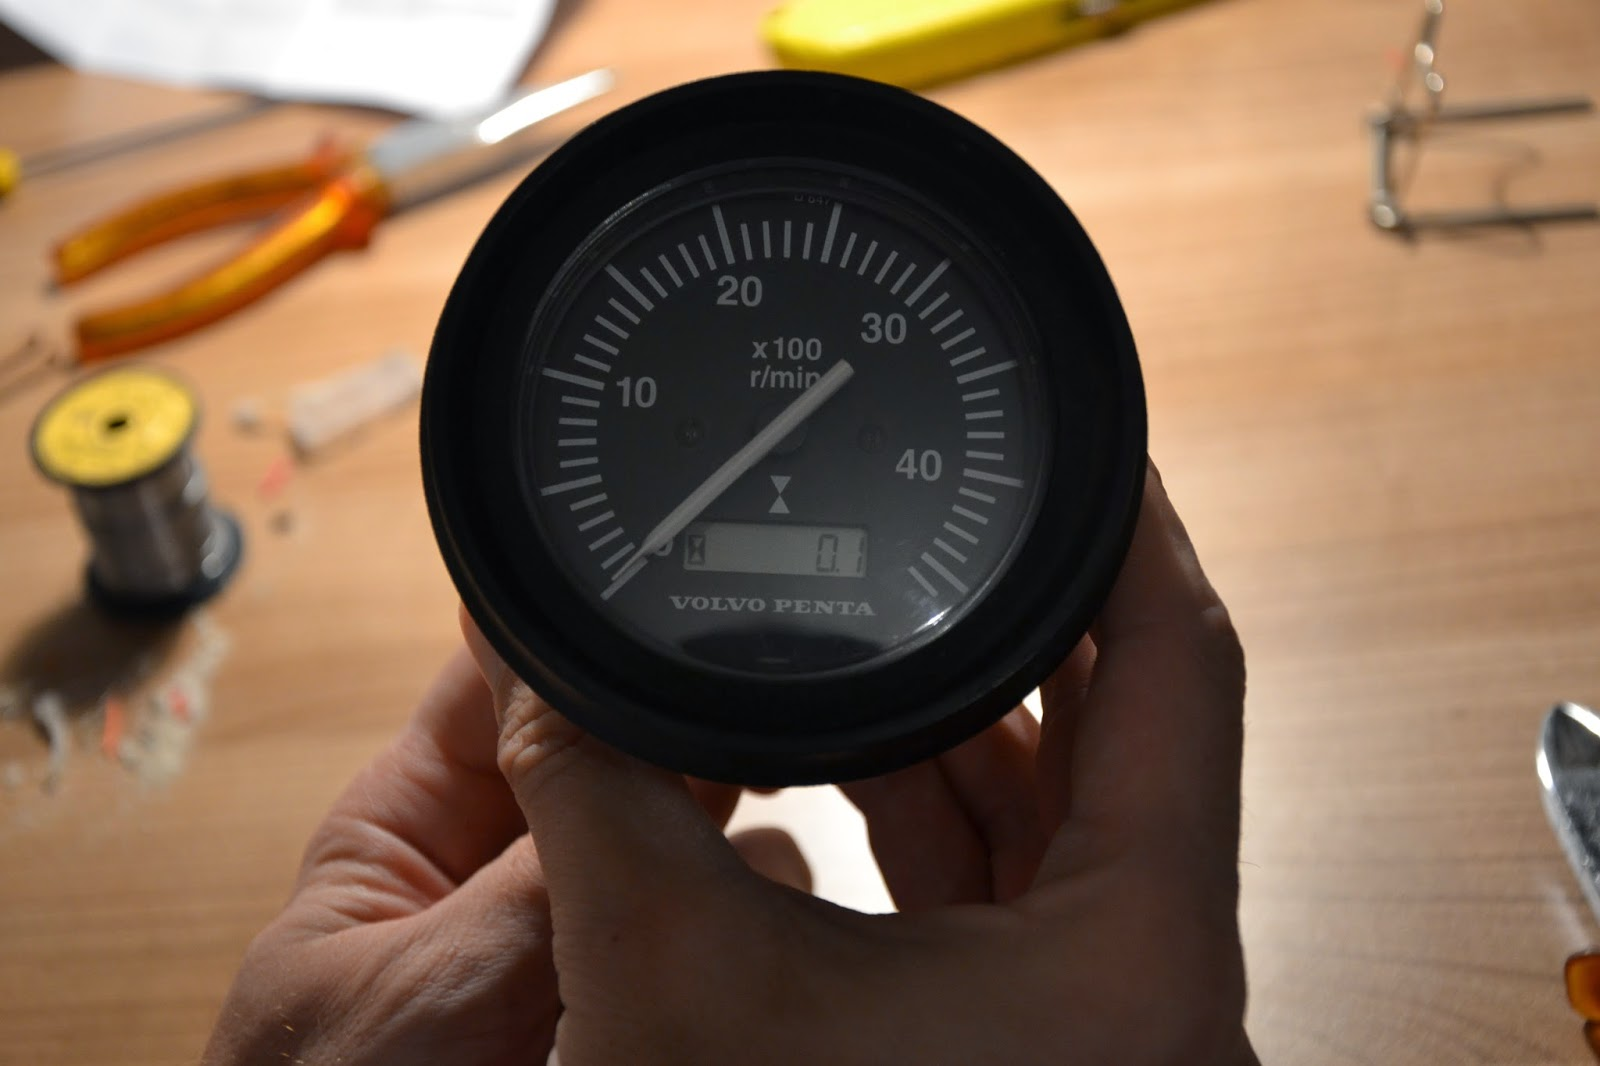 Vdo Tachometer With Hour Meter Wiring Diagram Leviton Decora 3 Way Switch 5603 We Sail Phobos 21 Replace Volvo Penta Lcd And It S Showing Hours Again